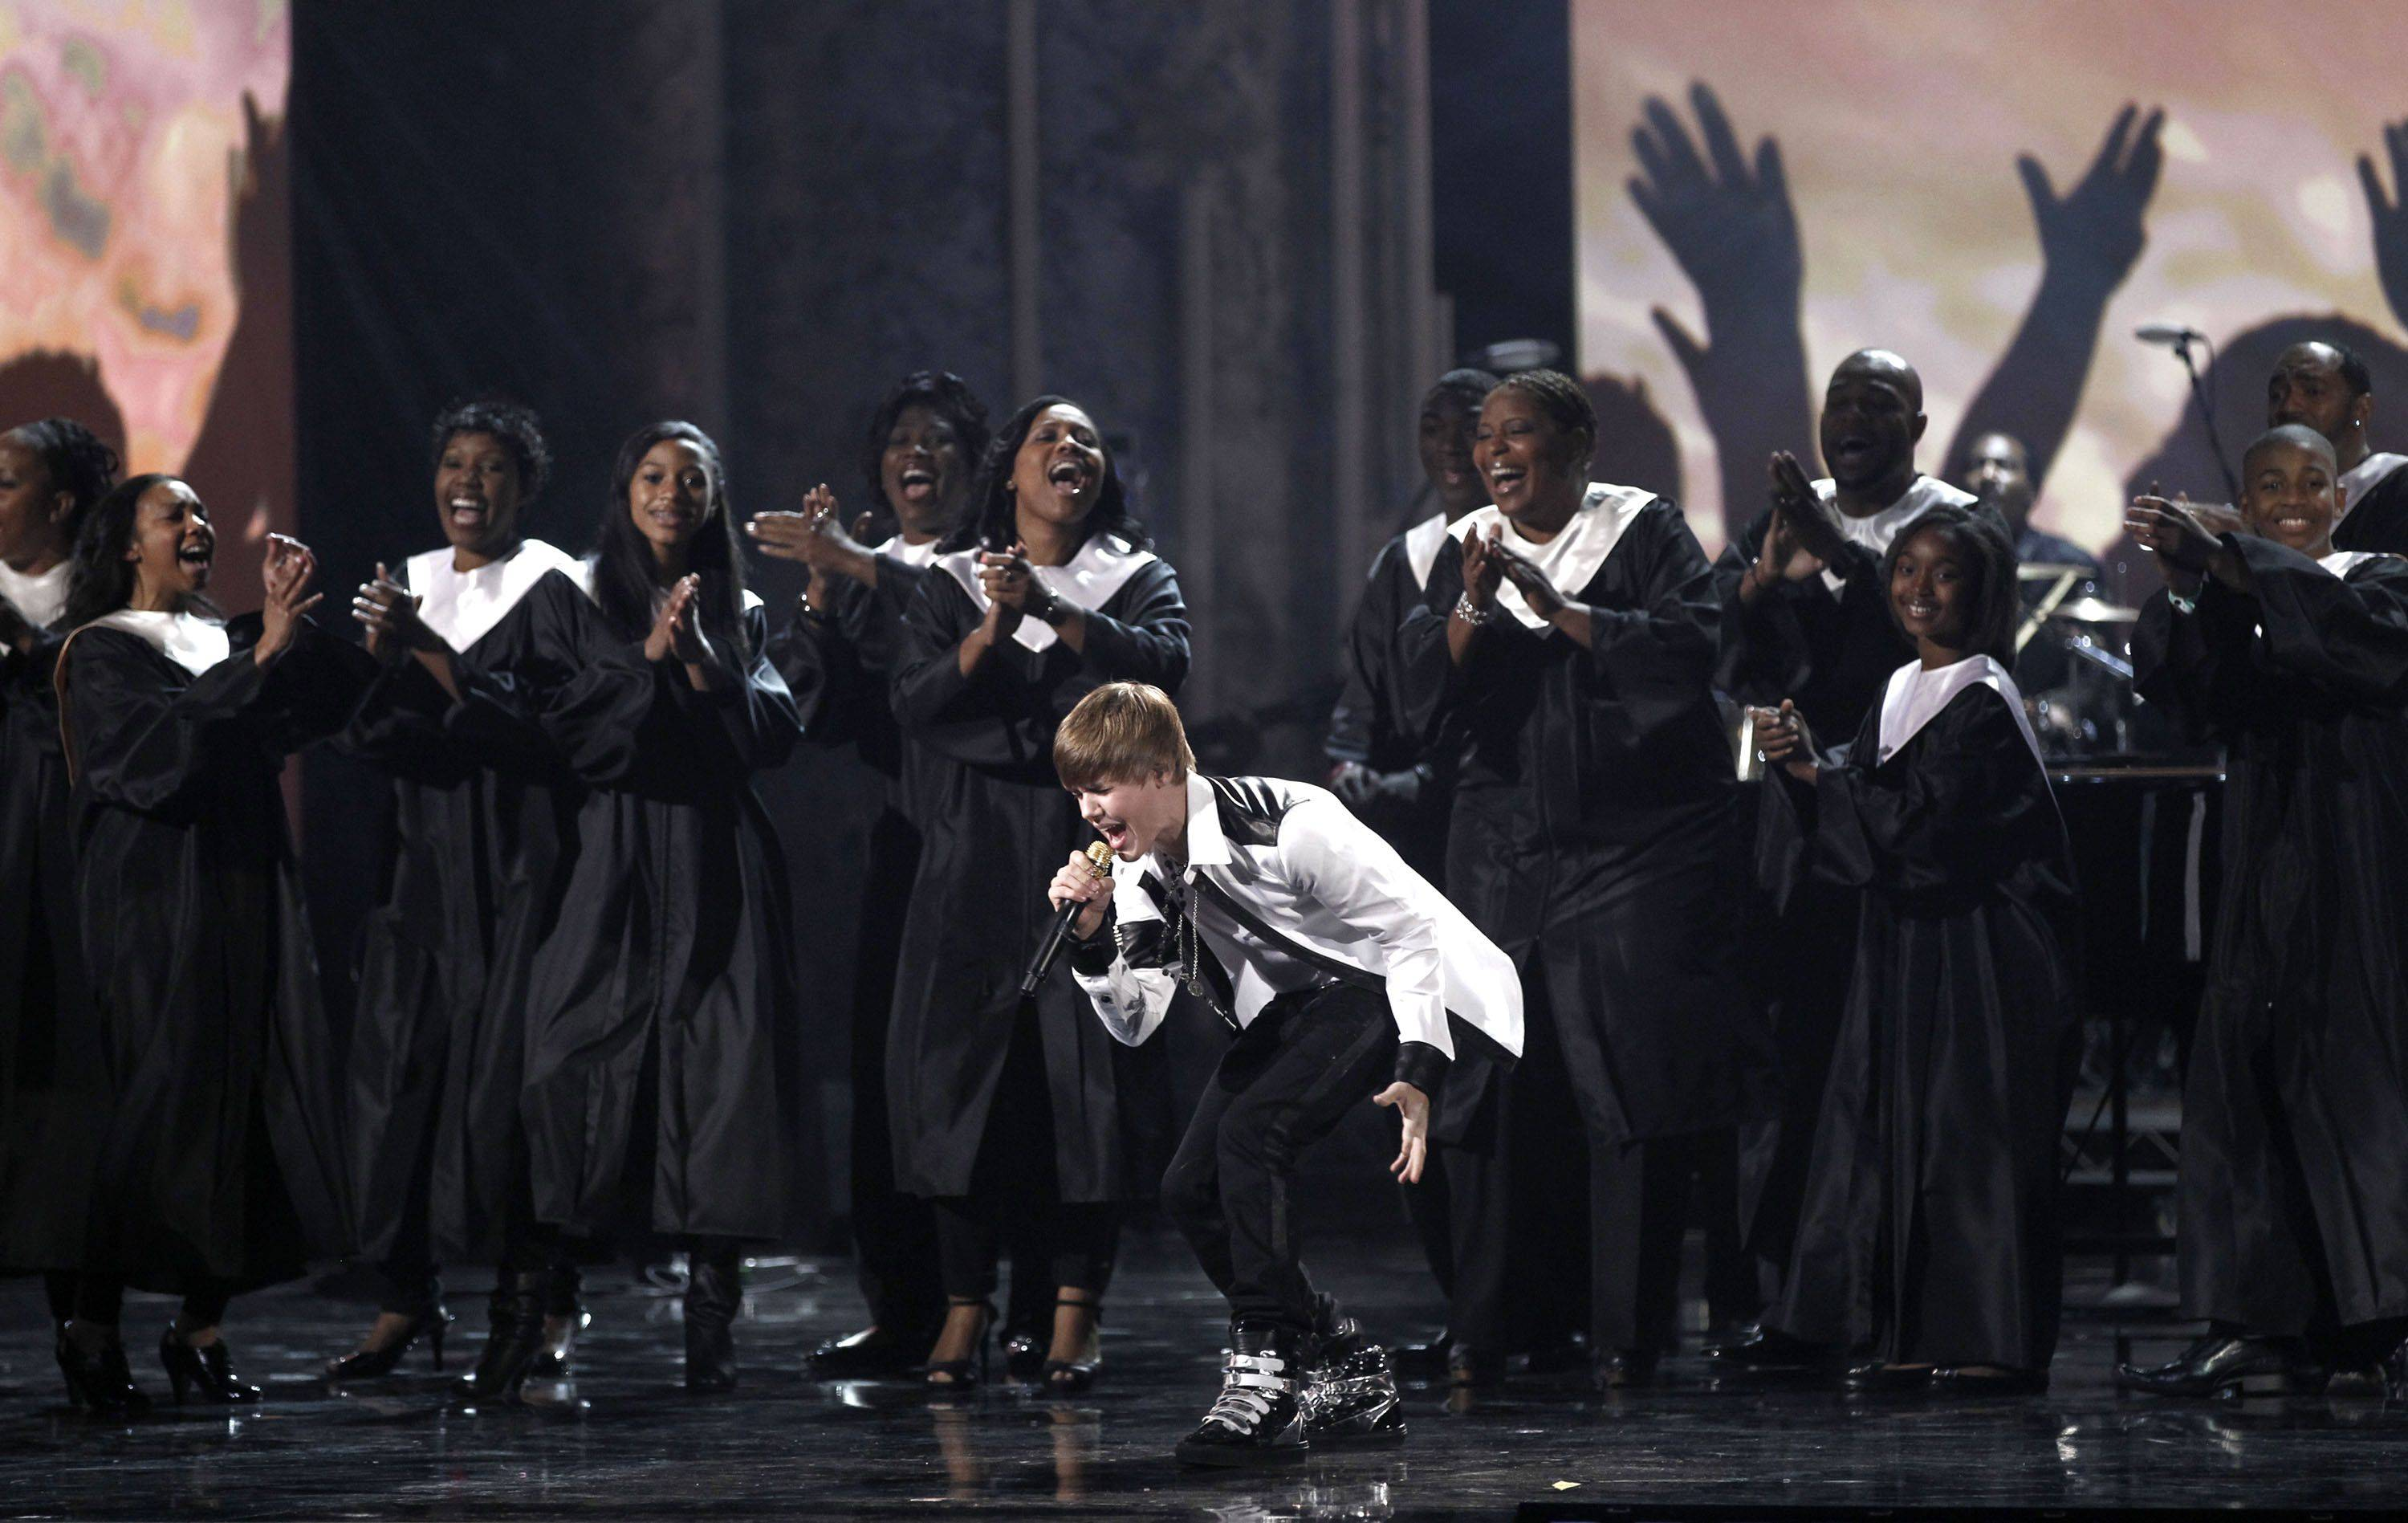 Justin Bieber performs with a choir at the 38th Annual American Music Awards on Sunday. Bieber would go on to have a big night, winning four trophies, more than any other artist.